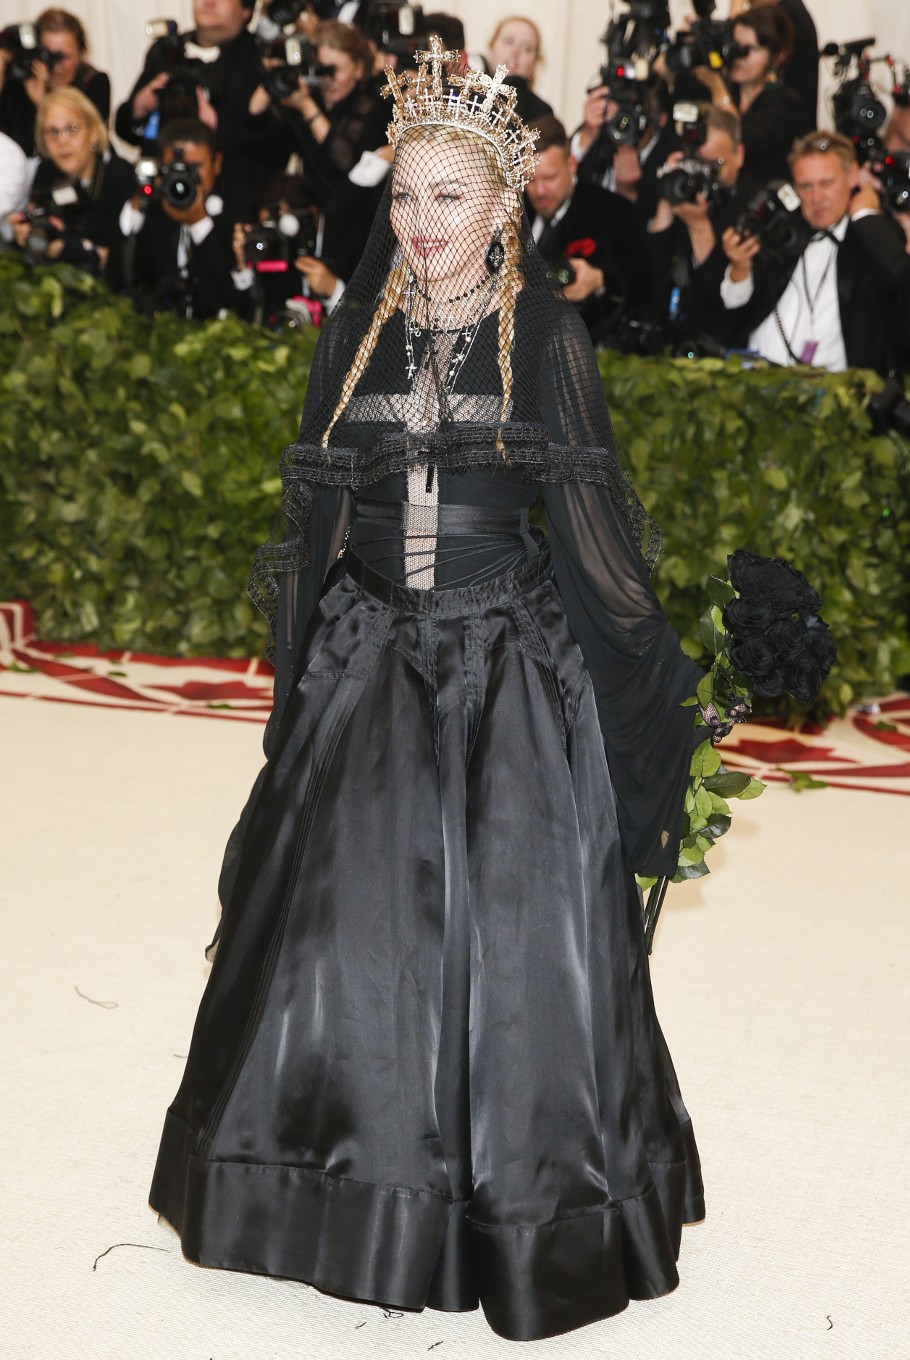 Singer-Songwriter Madonna arrives at the Metropolitan Museum of Art Costume Institute Gala (Met Gala) to celebrate the opening of 'Heavenly Bodies: Fashion and the Catholic Imagination' in the Manhattan borough of New York, U.S., May 7, 2018.